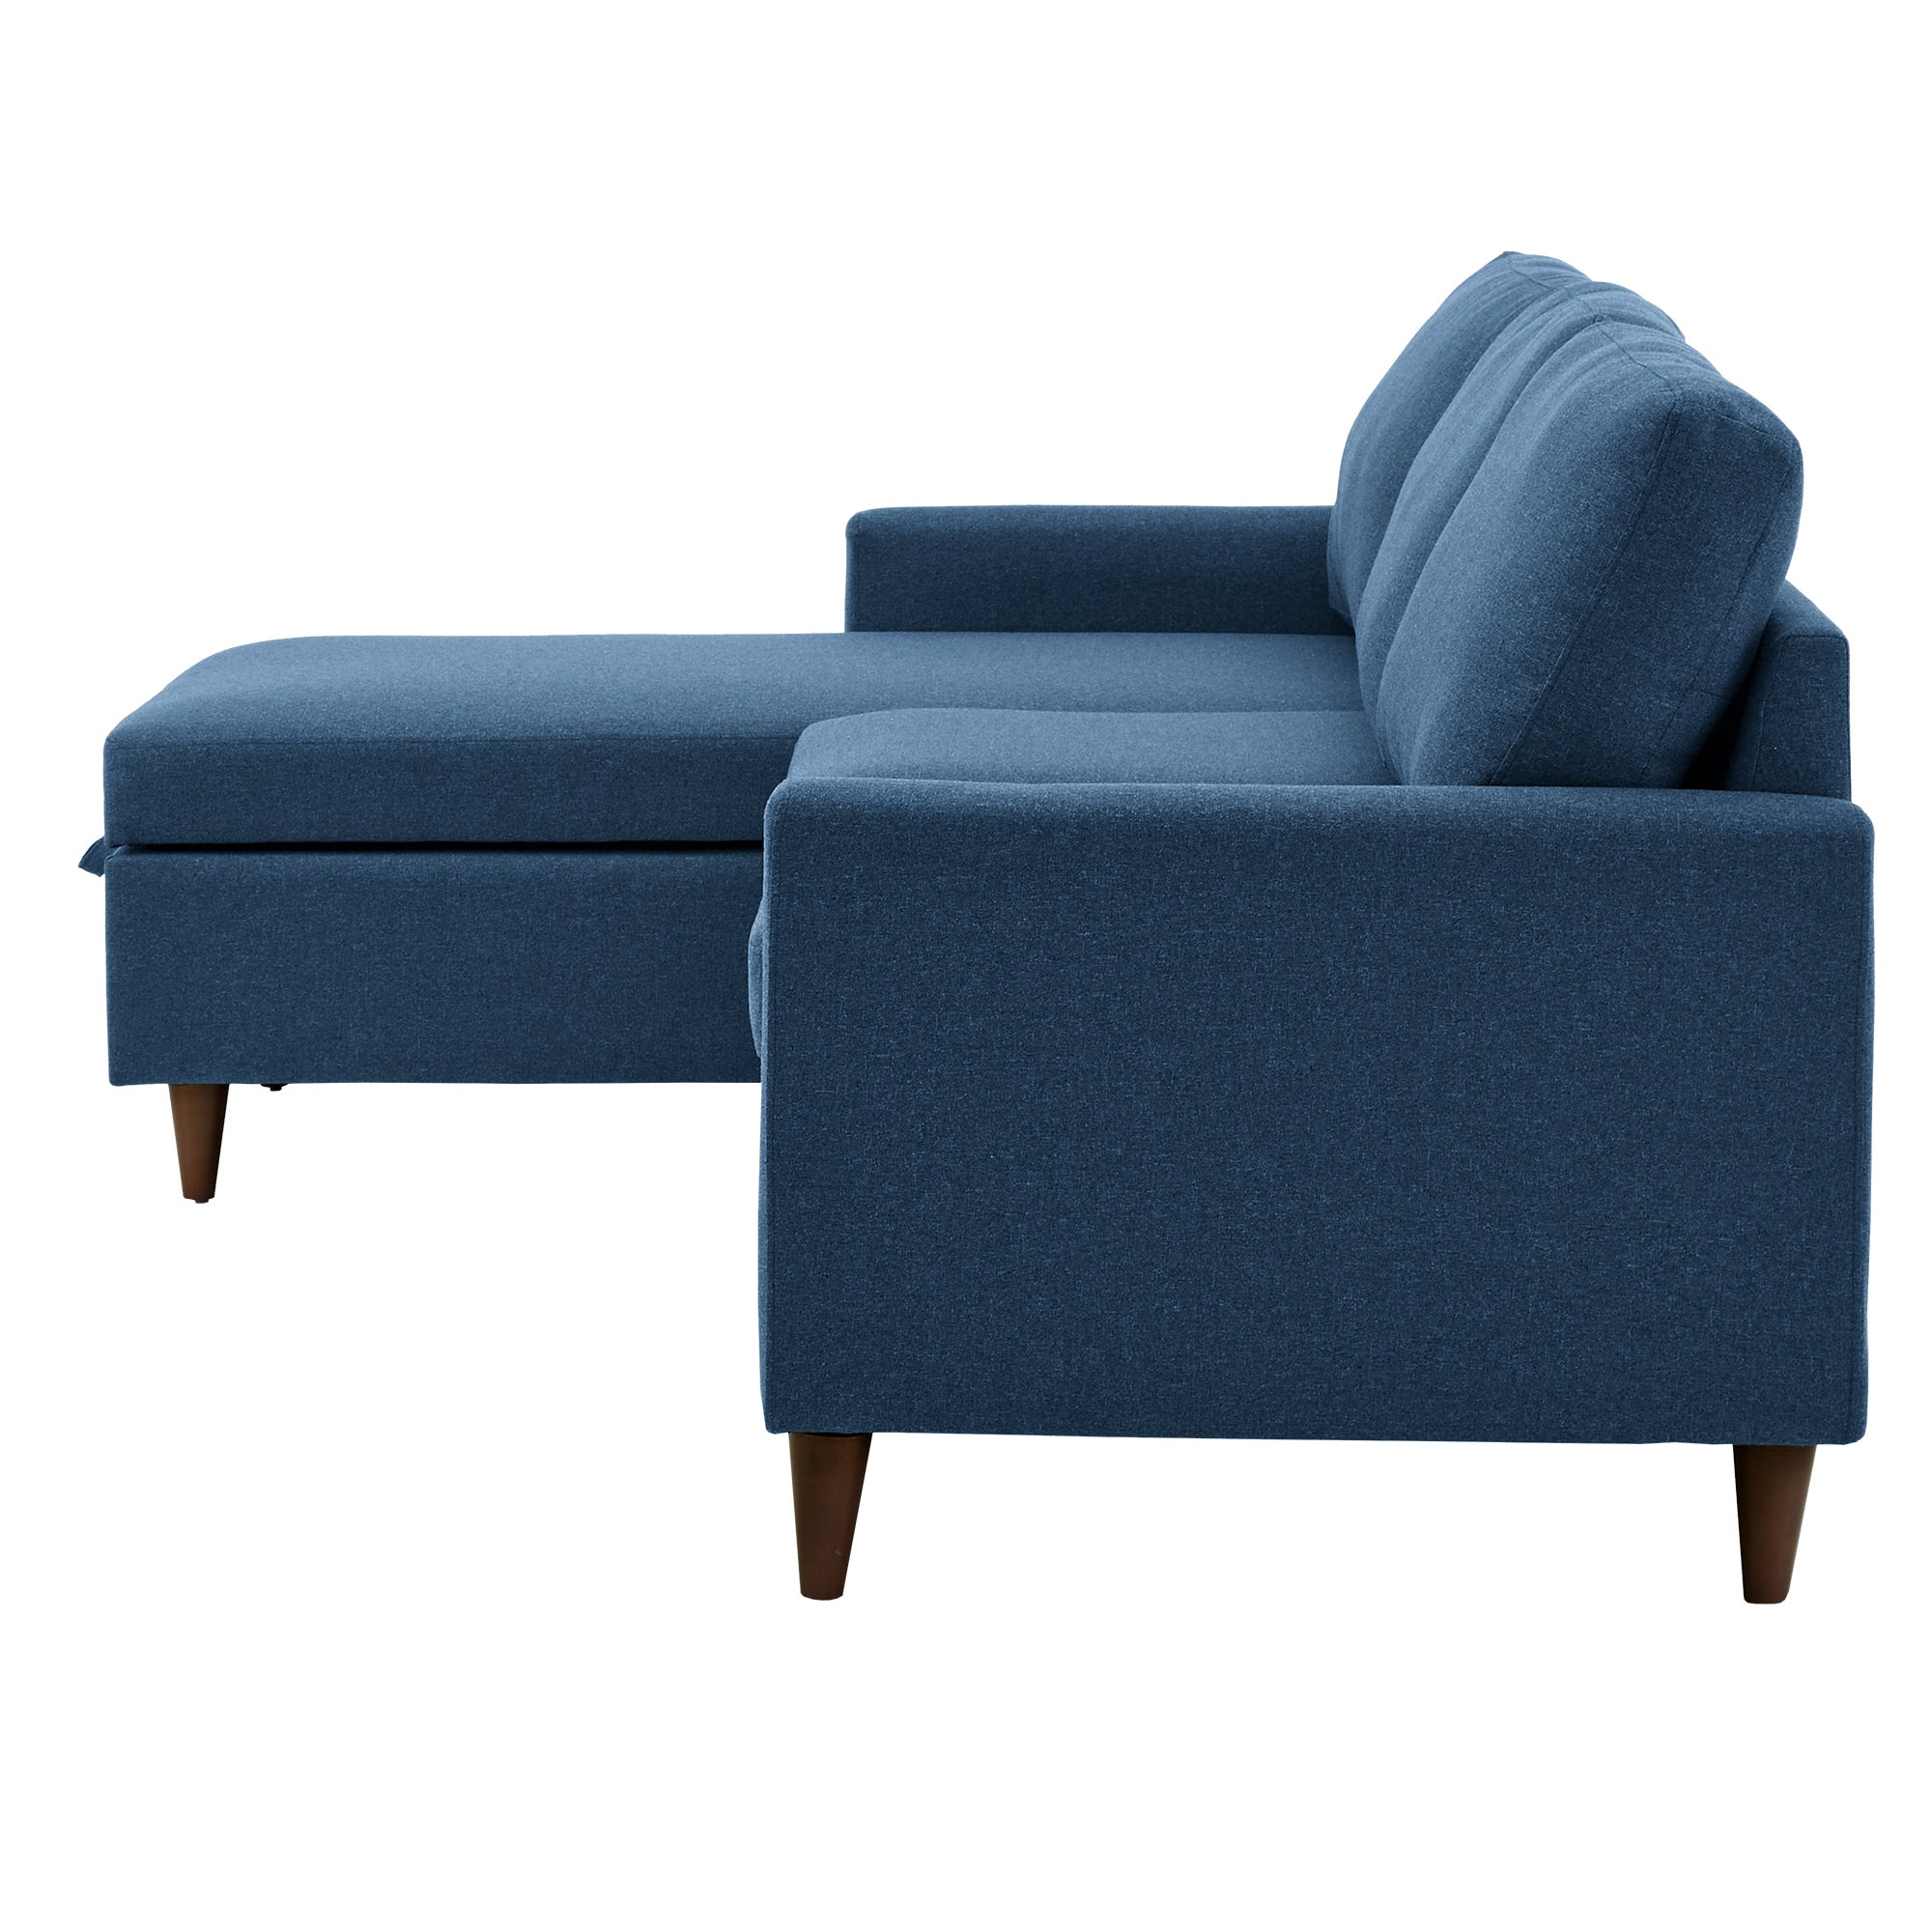 Walnut Finish Fabric Sectional Sofa with Reversible Storage Chaise - Blue